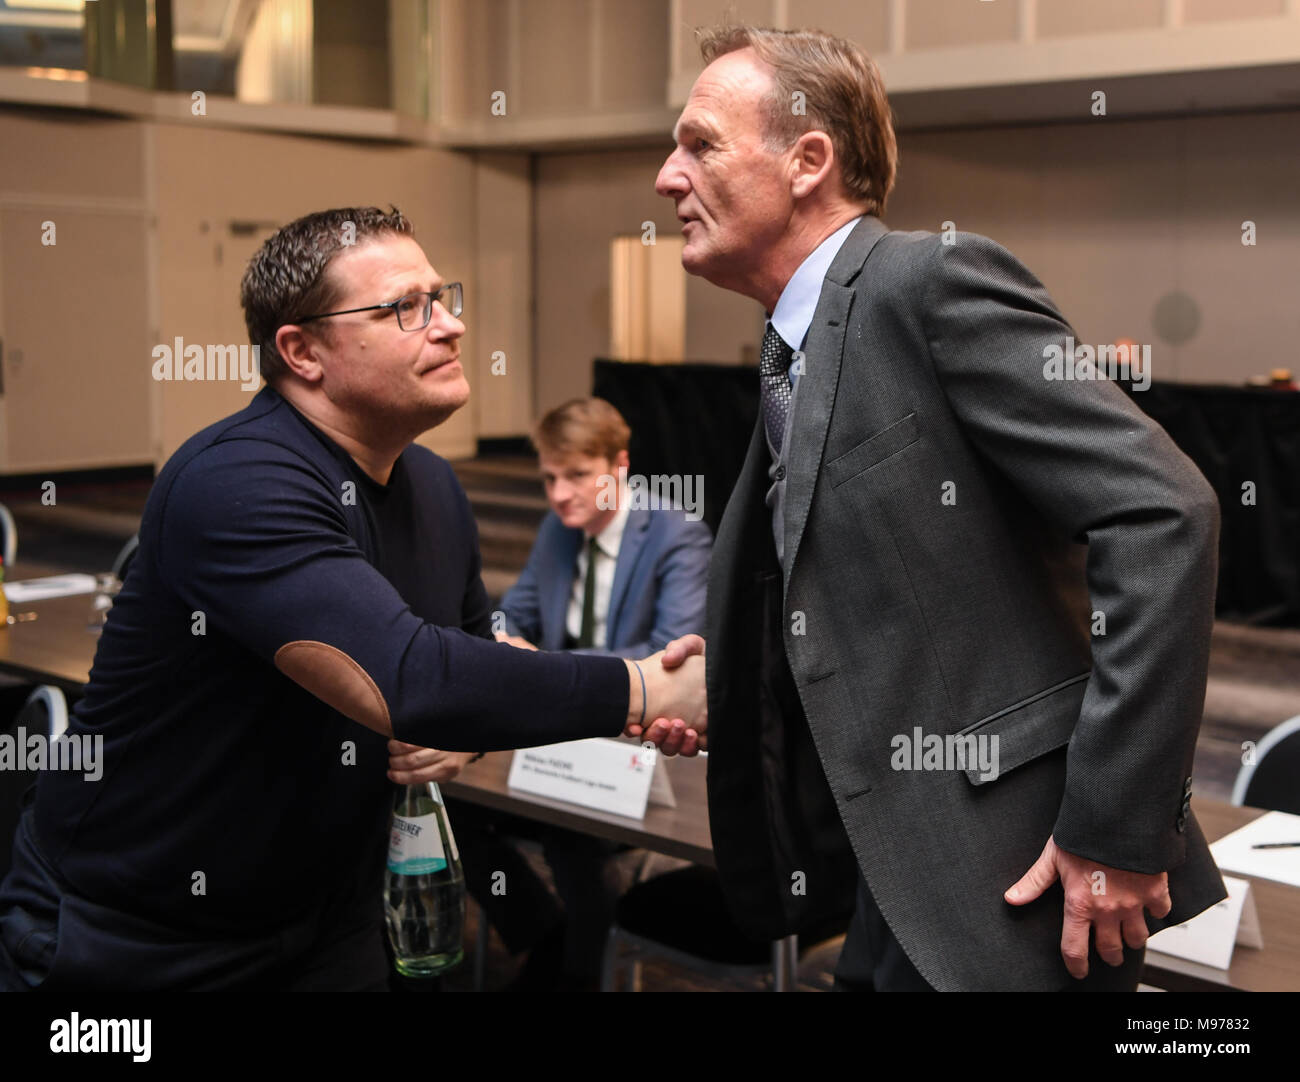 22 March 2018, Germany, Frankfurt/Main: Max Eberl (l), sports director of Borussia Moenchengladbach, and Hans-Joachim Watzke, director of Borussia Dortmund, speak at a members' assembly of the German Soccer League (DFL). Photo: Arne Dedert/dpa - Stock Image